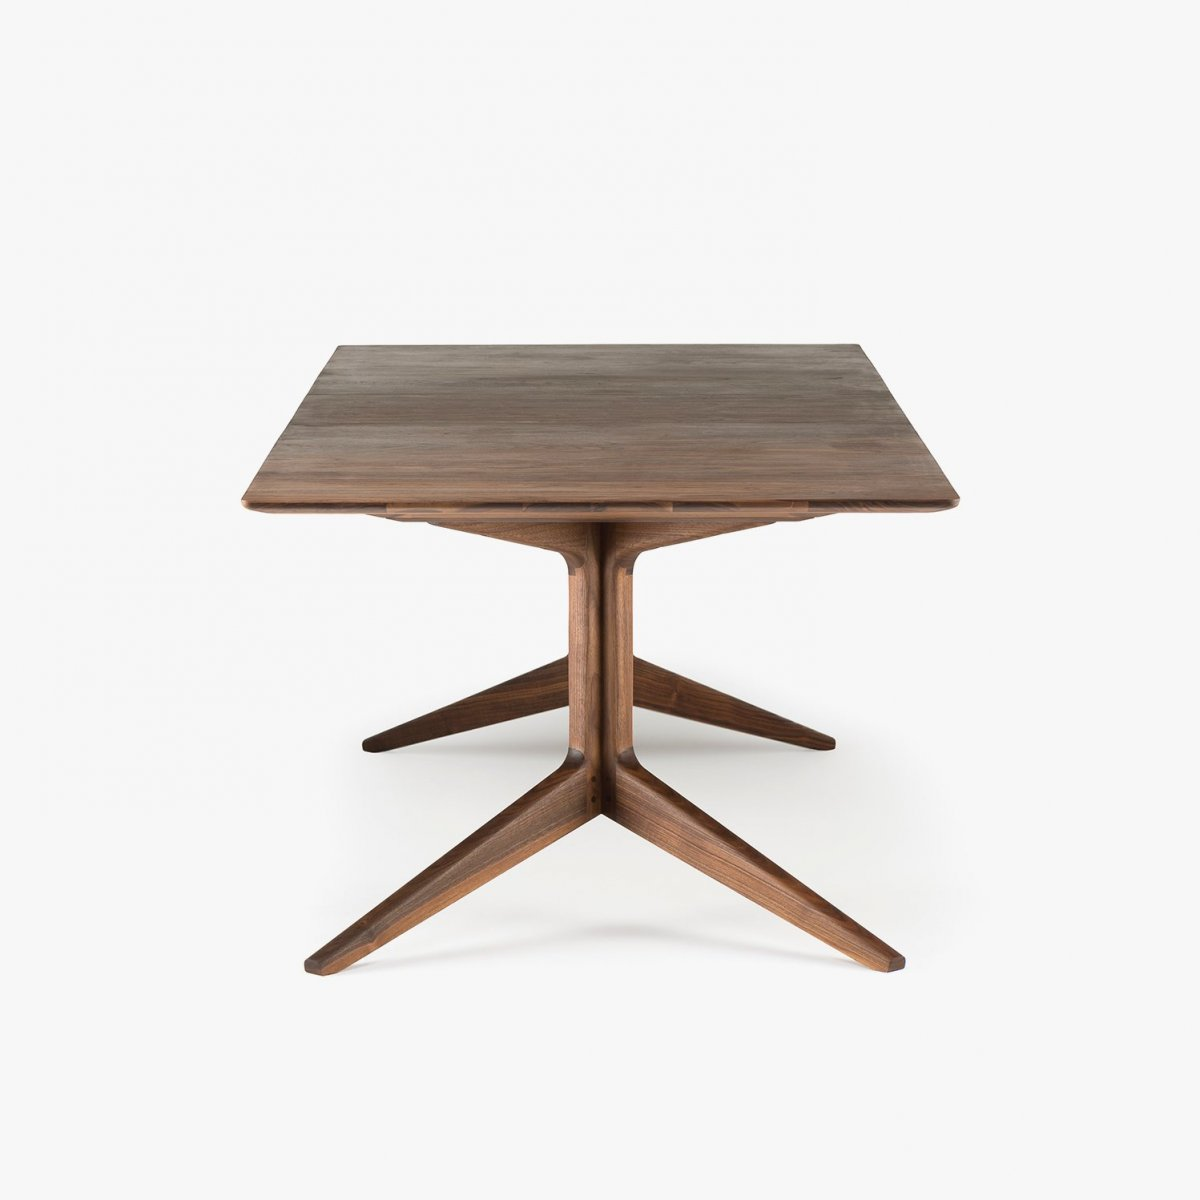 341E Light Extending Table in Danish oiled walnut, side view.